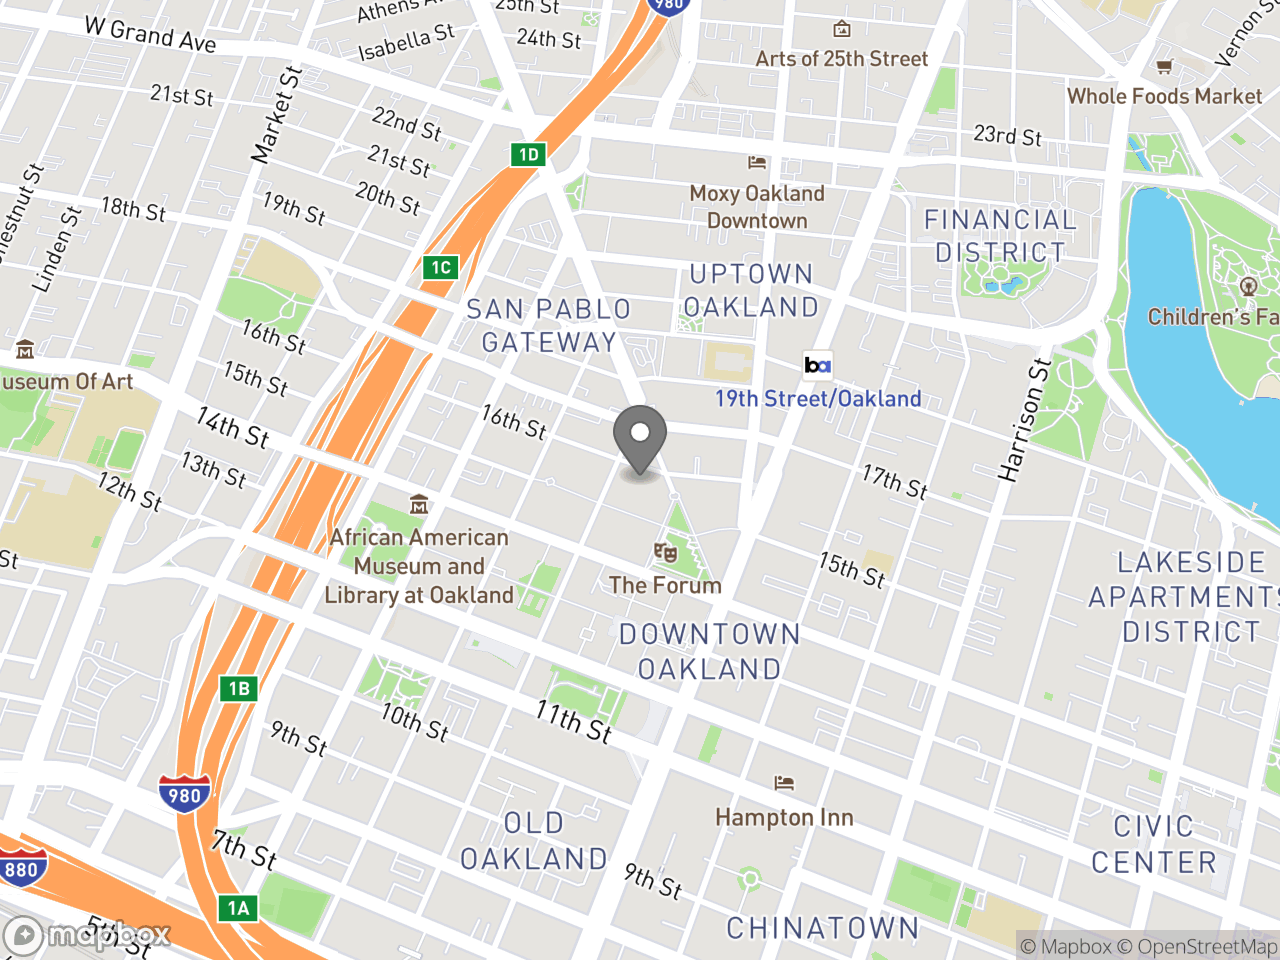 Map location for Economic & Workforce Development, located at 250 Frank H Ogawa Plaza in Oakland, CA 94612